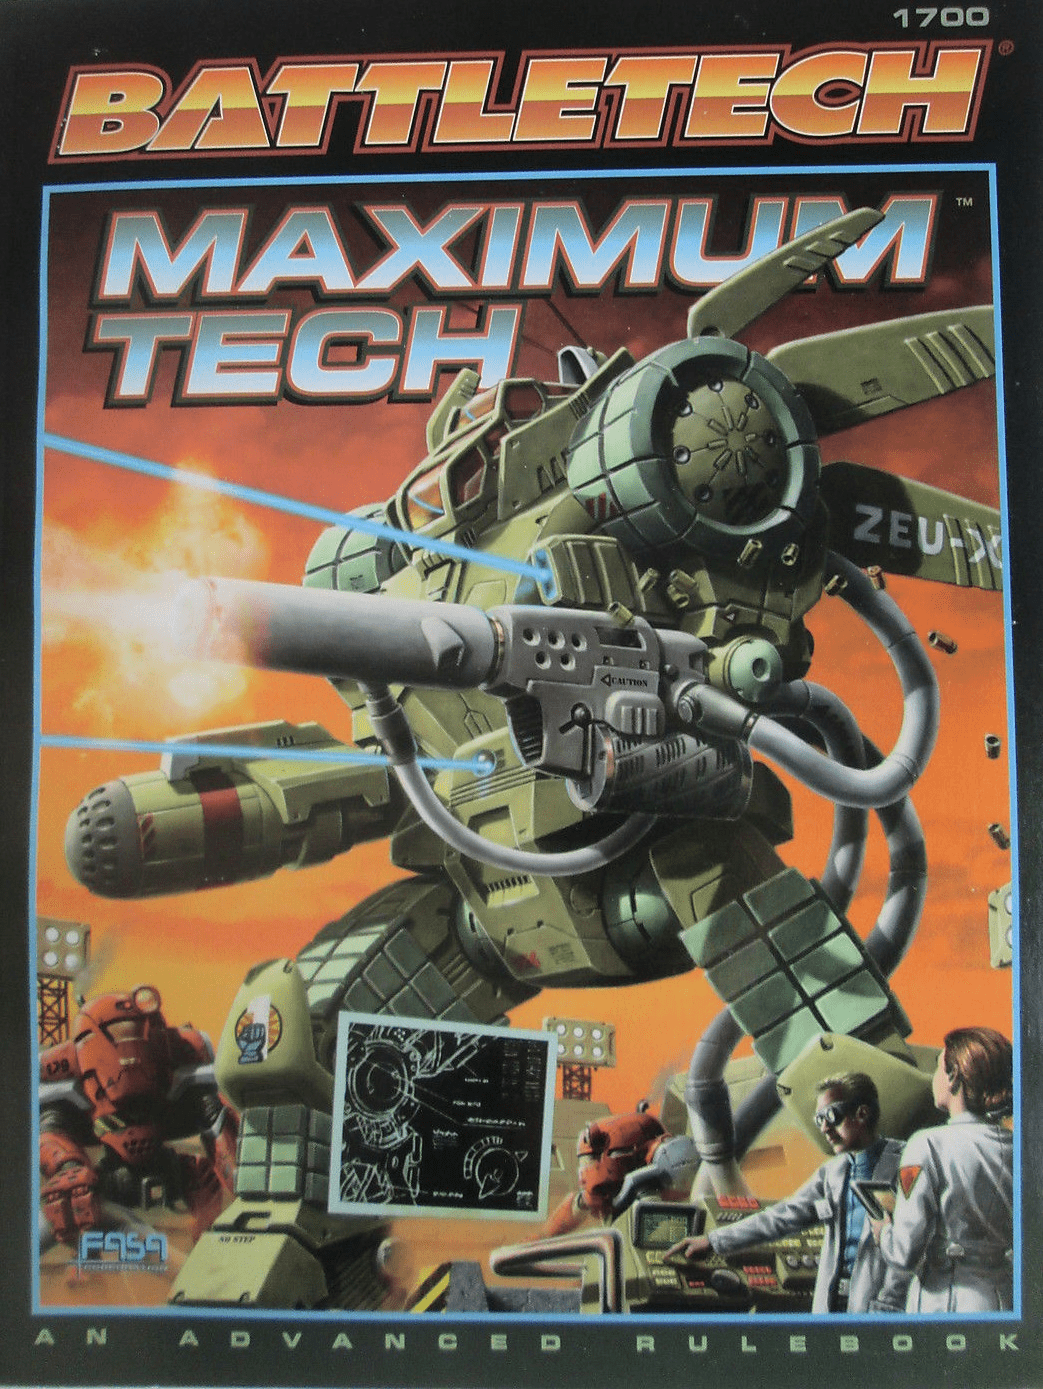 Battletech Maximum Tech RPG Book